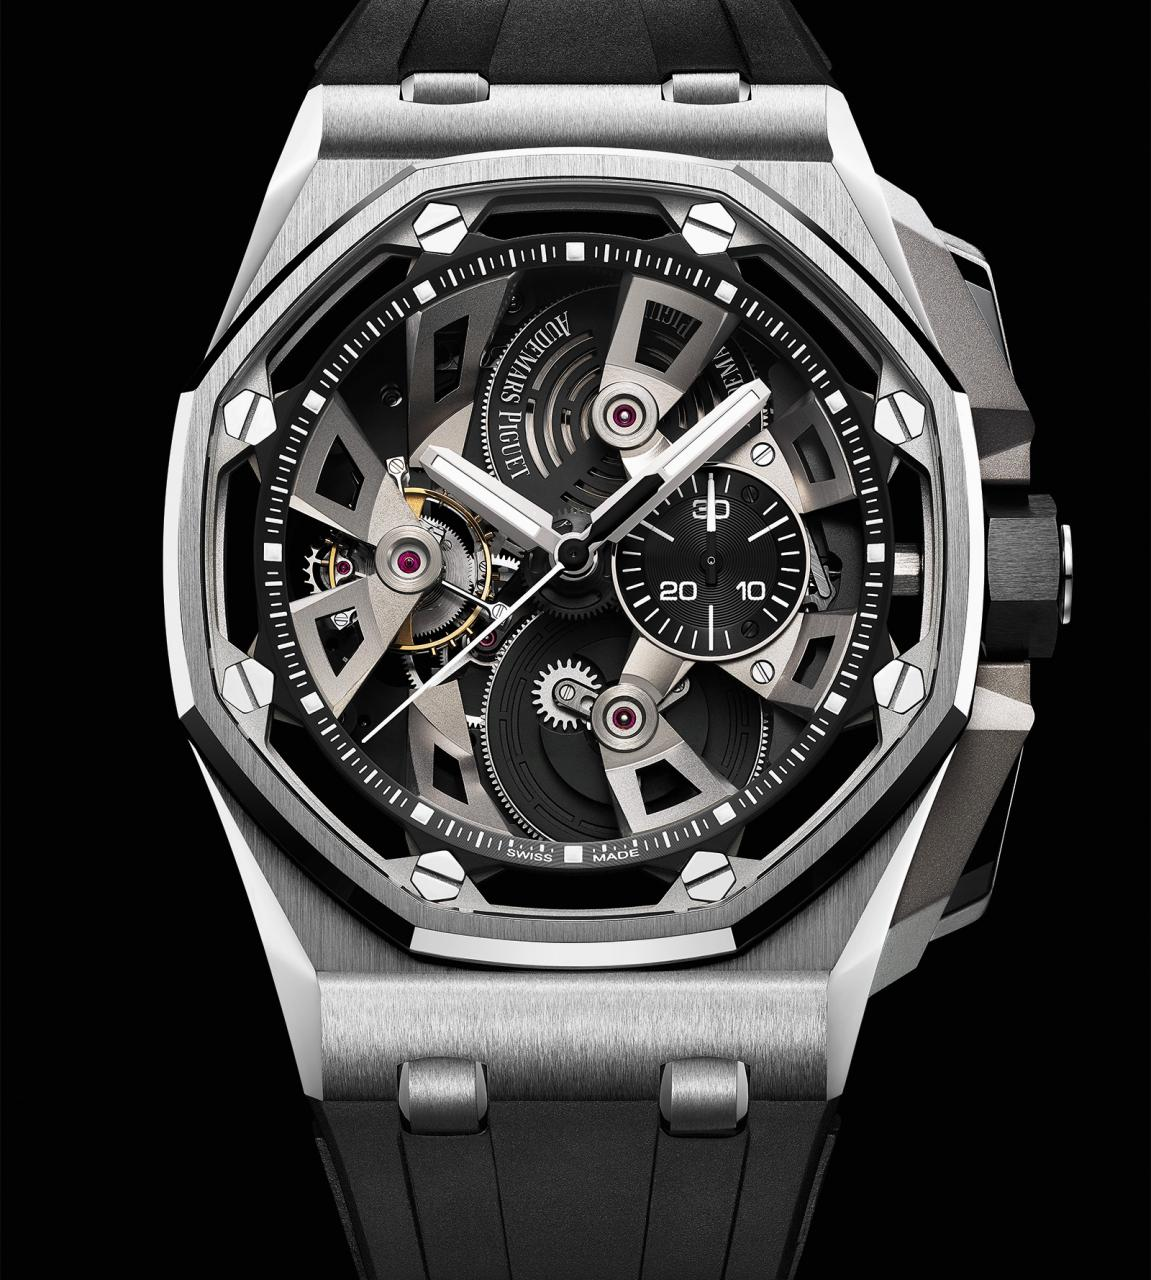 AP Royal Oak Offshore Tourbillon Chronograph